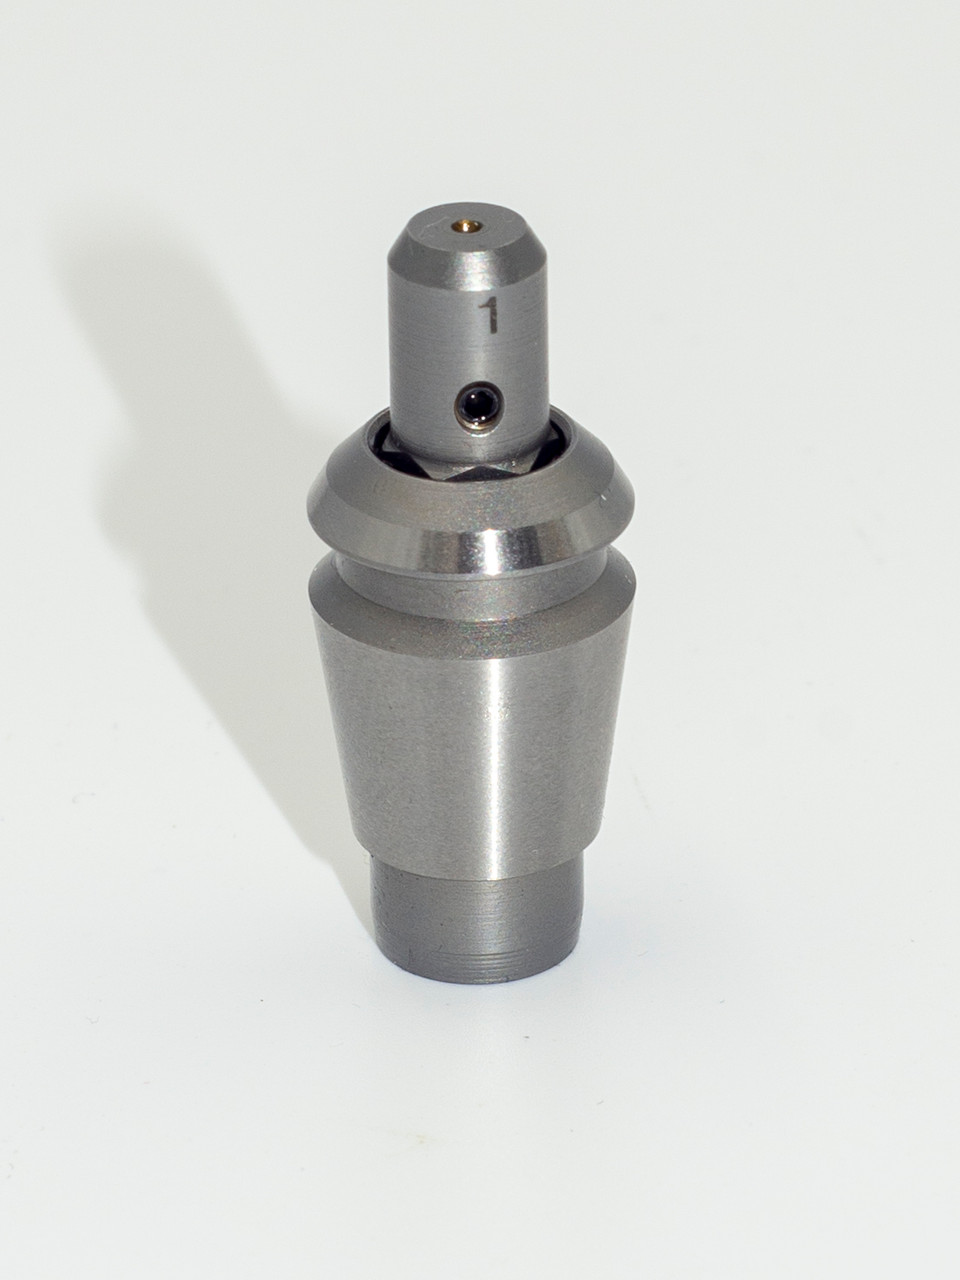 This Tapping  collet is for Taps with a 1.00m shank diameter.  Tapping collets, fit ER-16 collet holders,  Select the collet that fits the shank of your tap.  These spring loaded collets fits shank sizes 1.0mm, 1.5mm and 2.0mm.